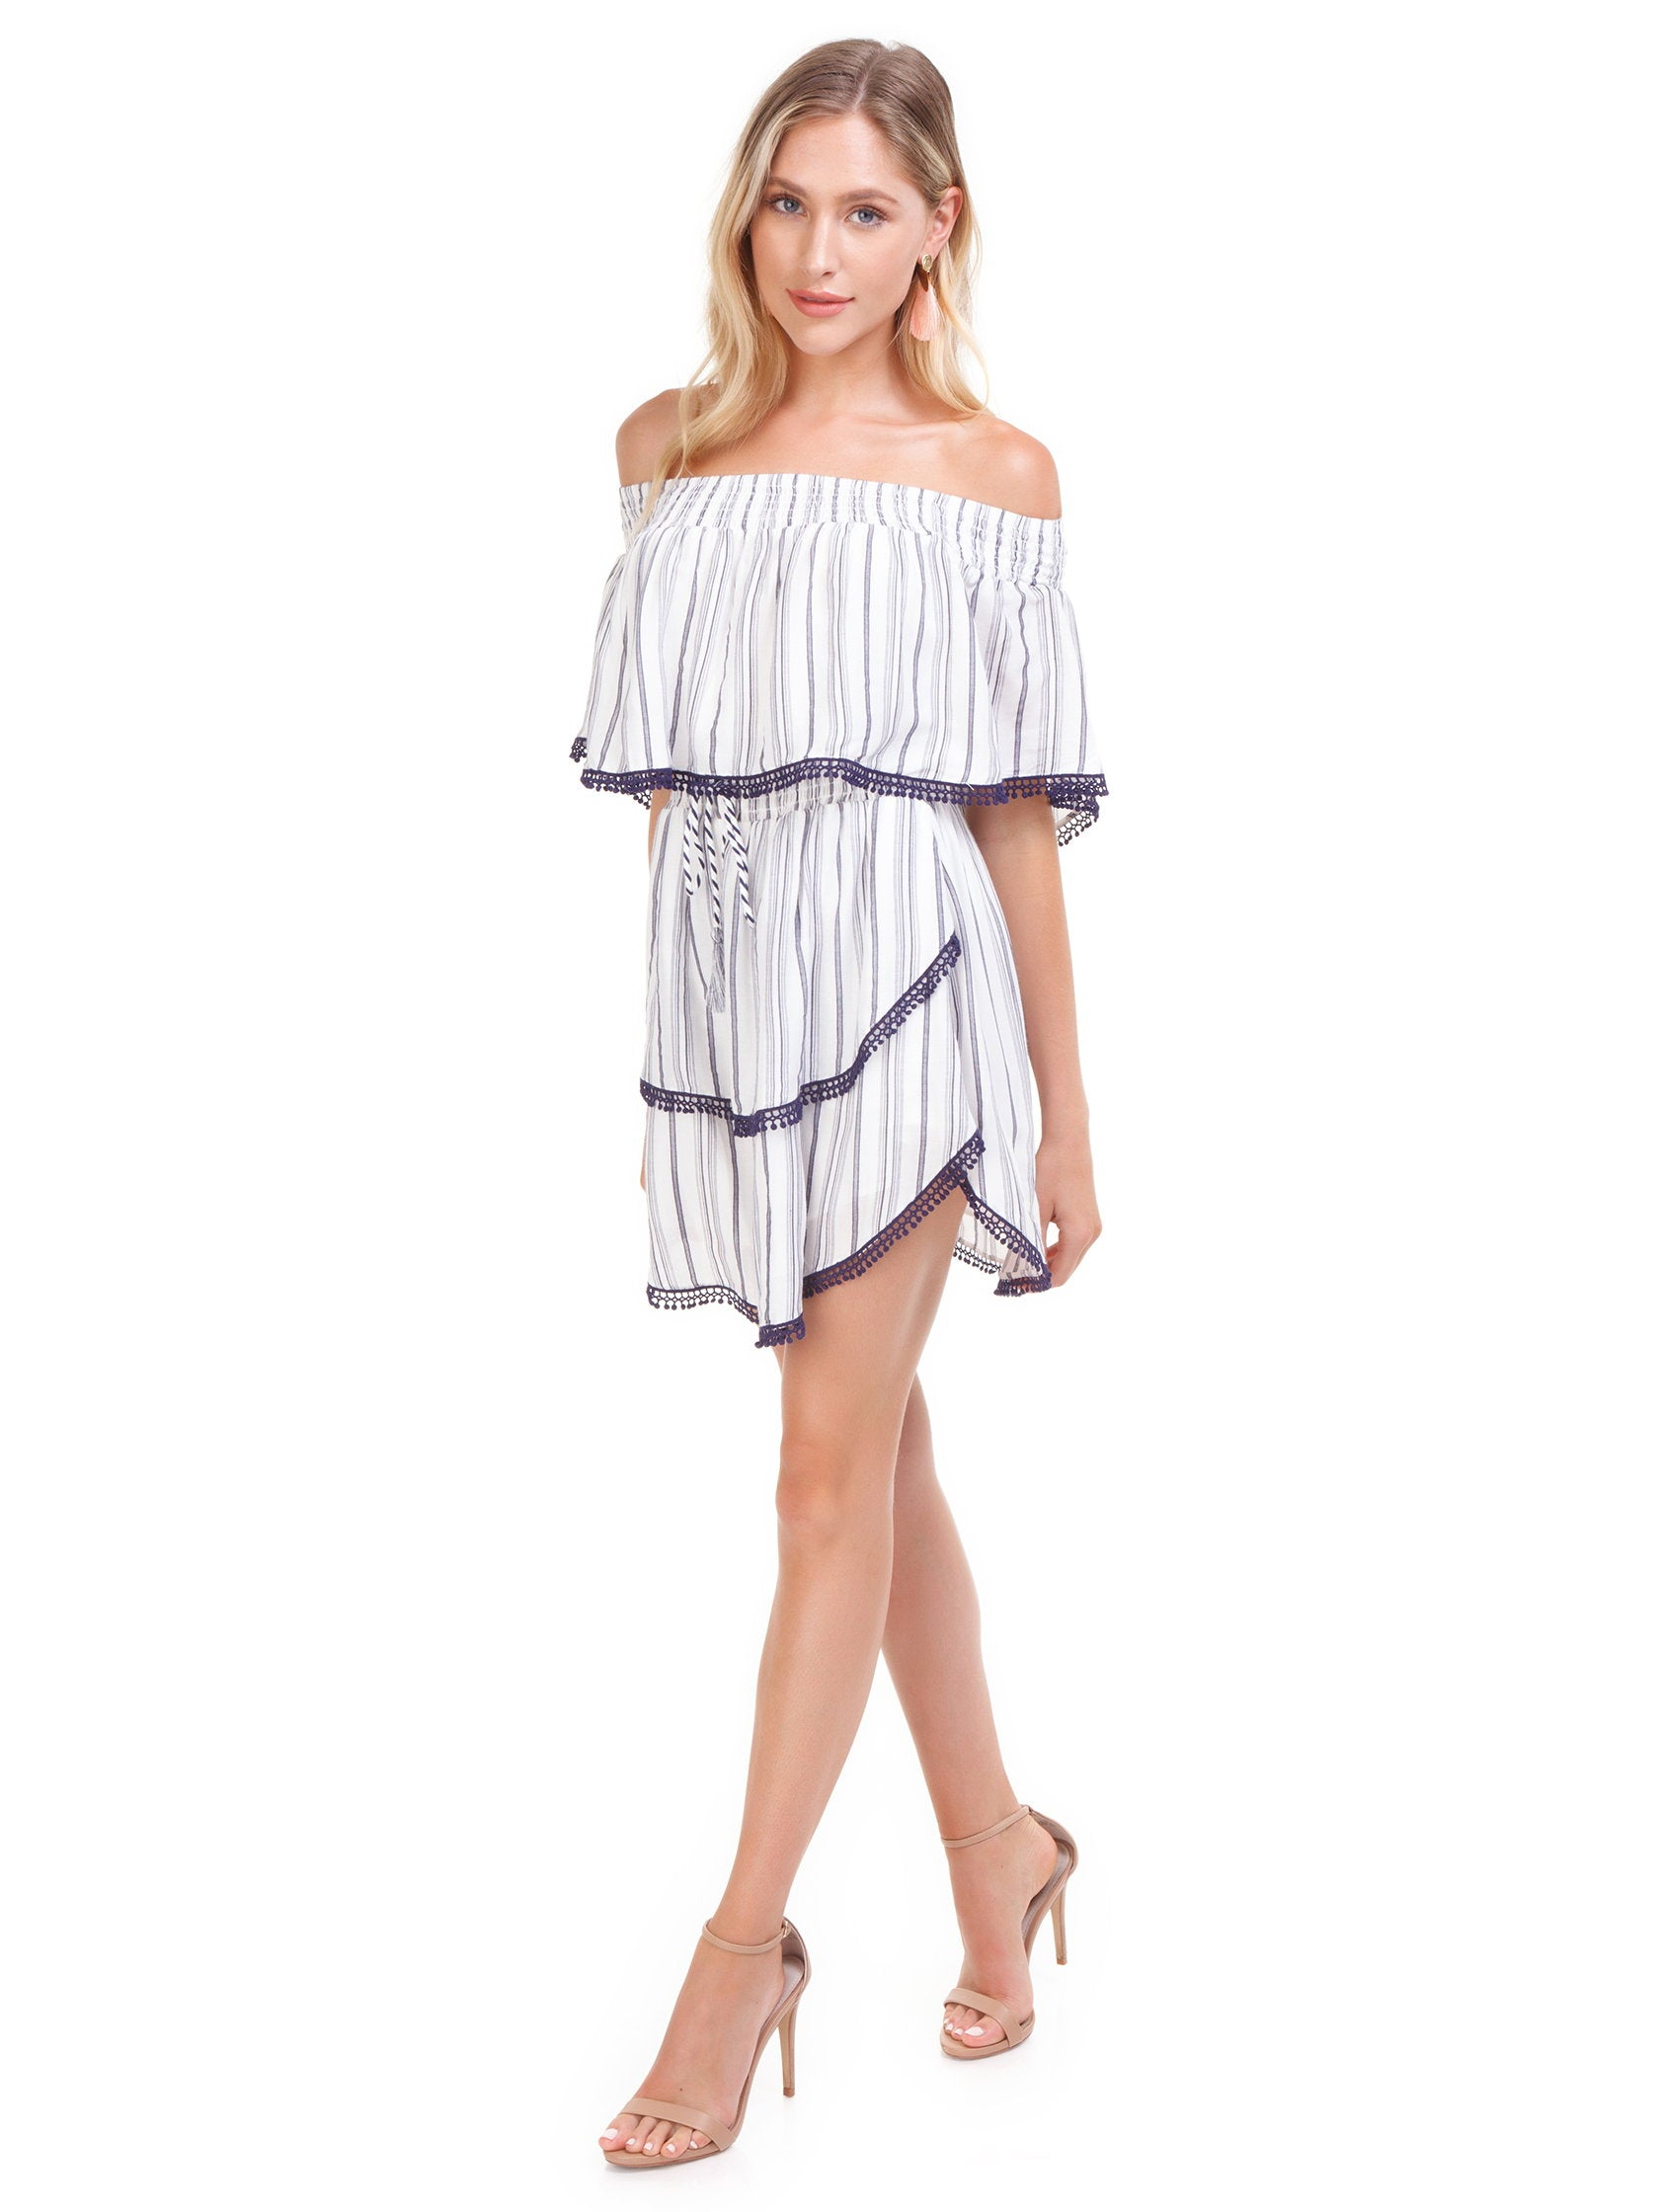 2e2a4173ed Girl wearing a dress rental from The Jetset Diaries called Aries Stripe Mini  Dress